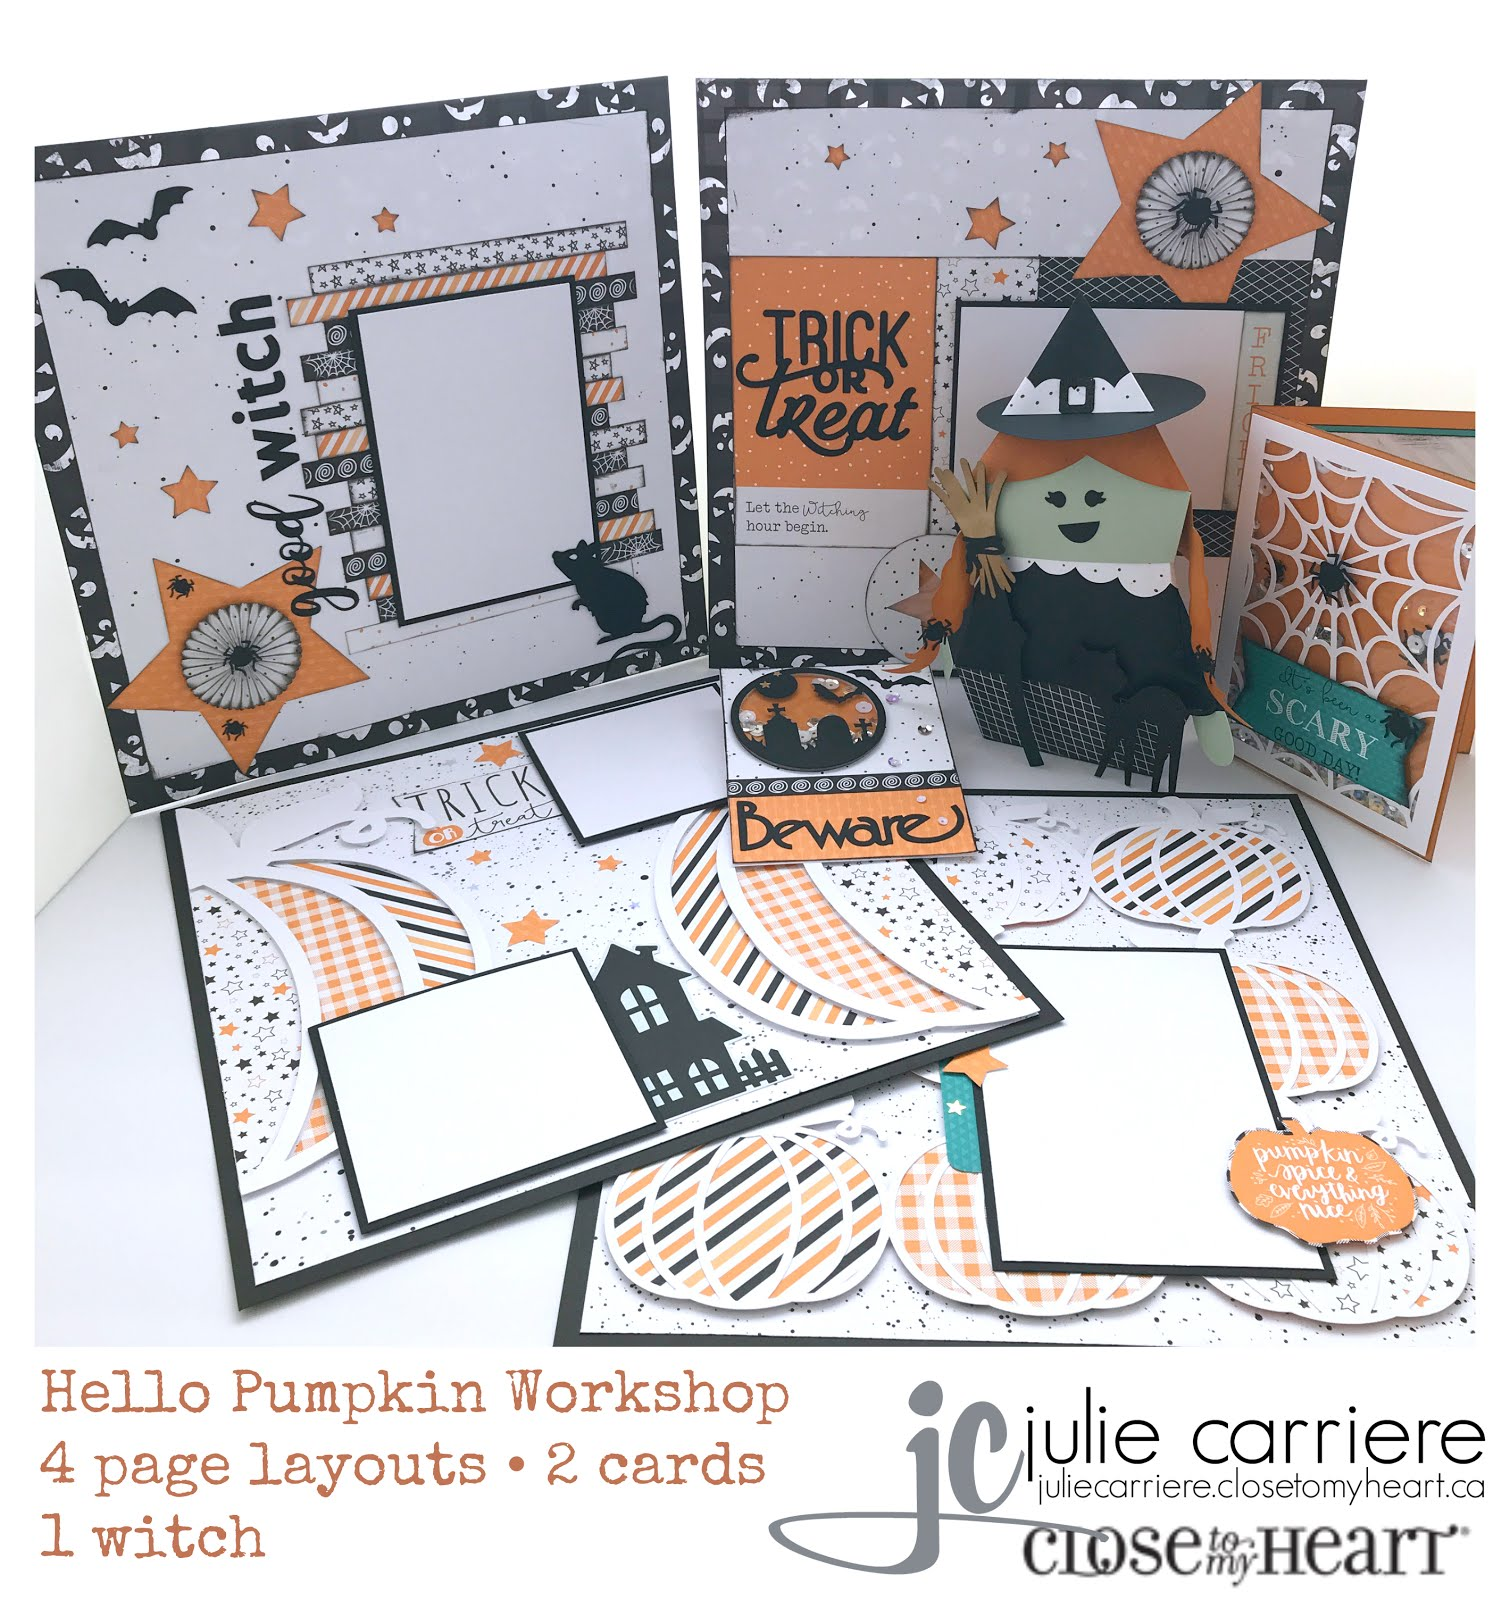 Hello Pumpkin Cardmaking/Scrapbooking/3D Witch